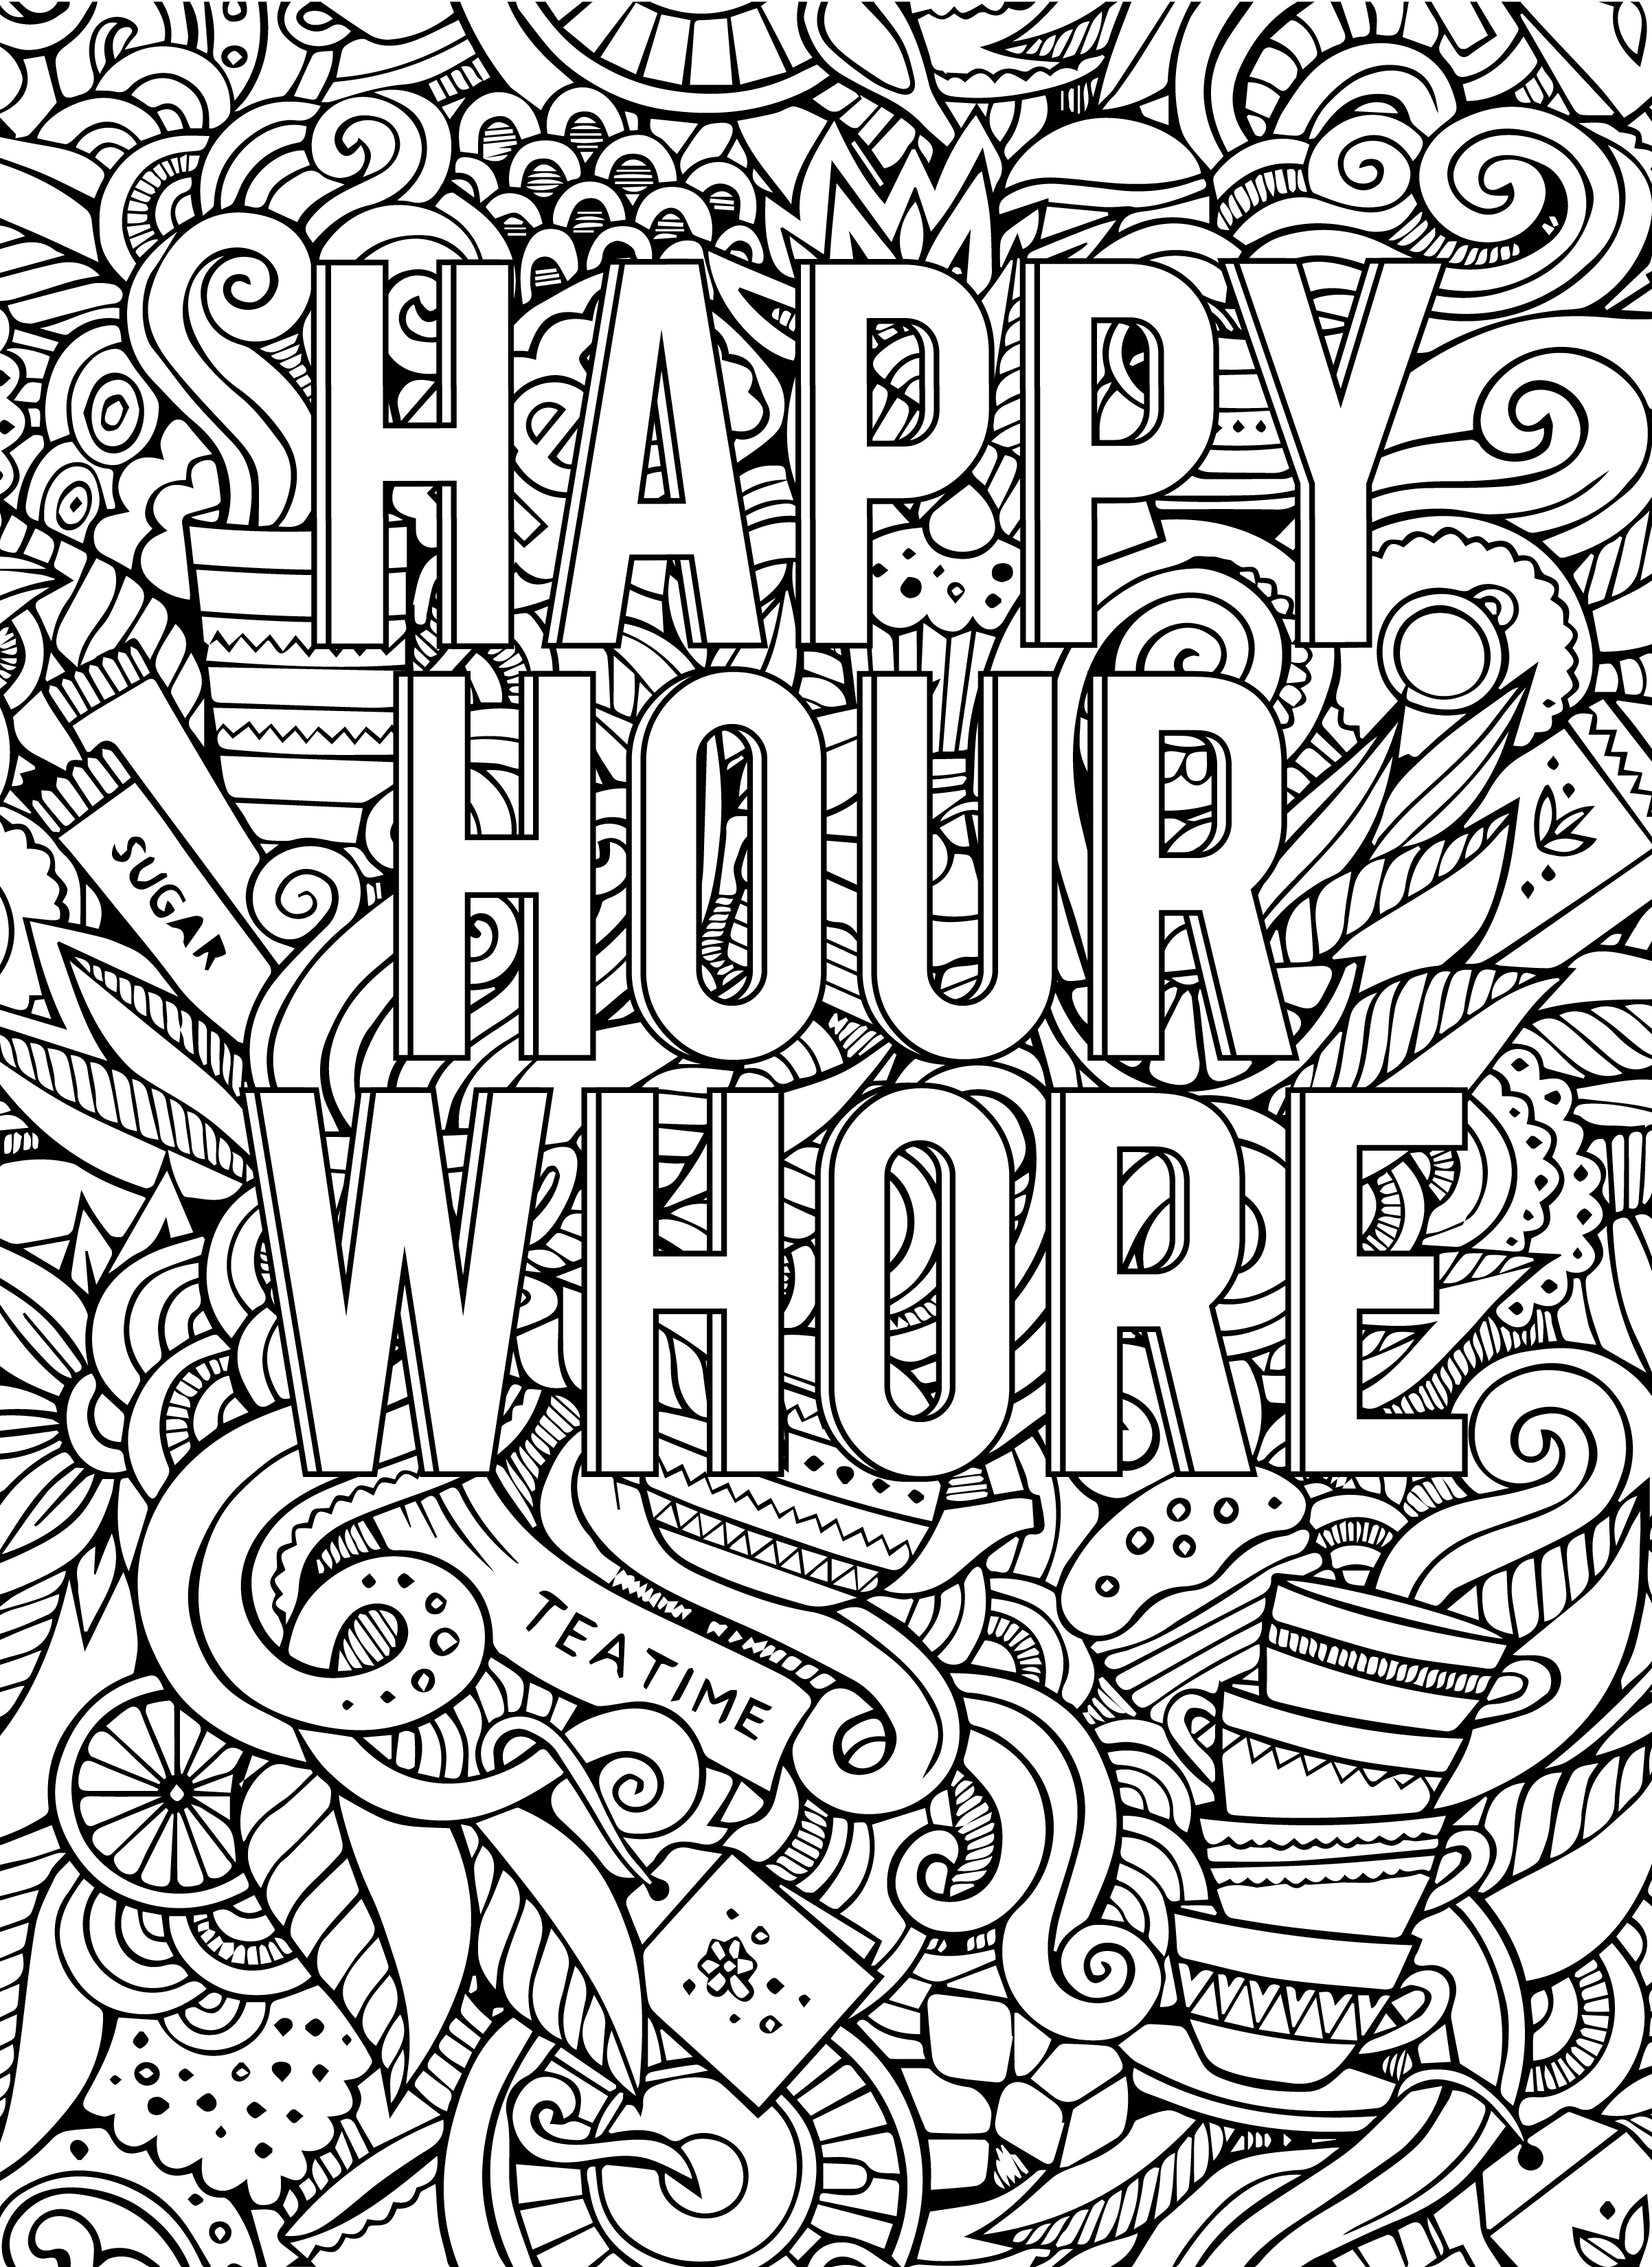 Swear word coloring book volume 1 - Swear Word Adult Coloring Book For Adult Pages Happy Hour Whore